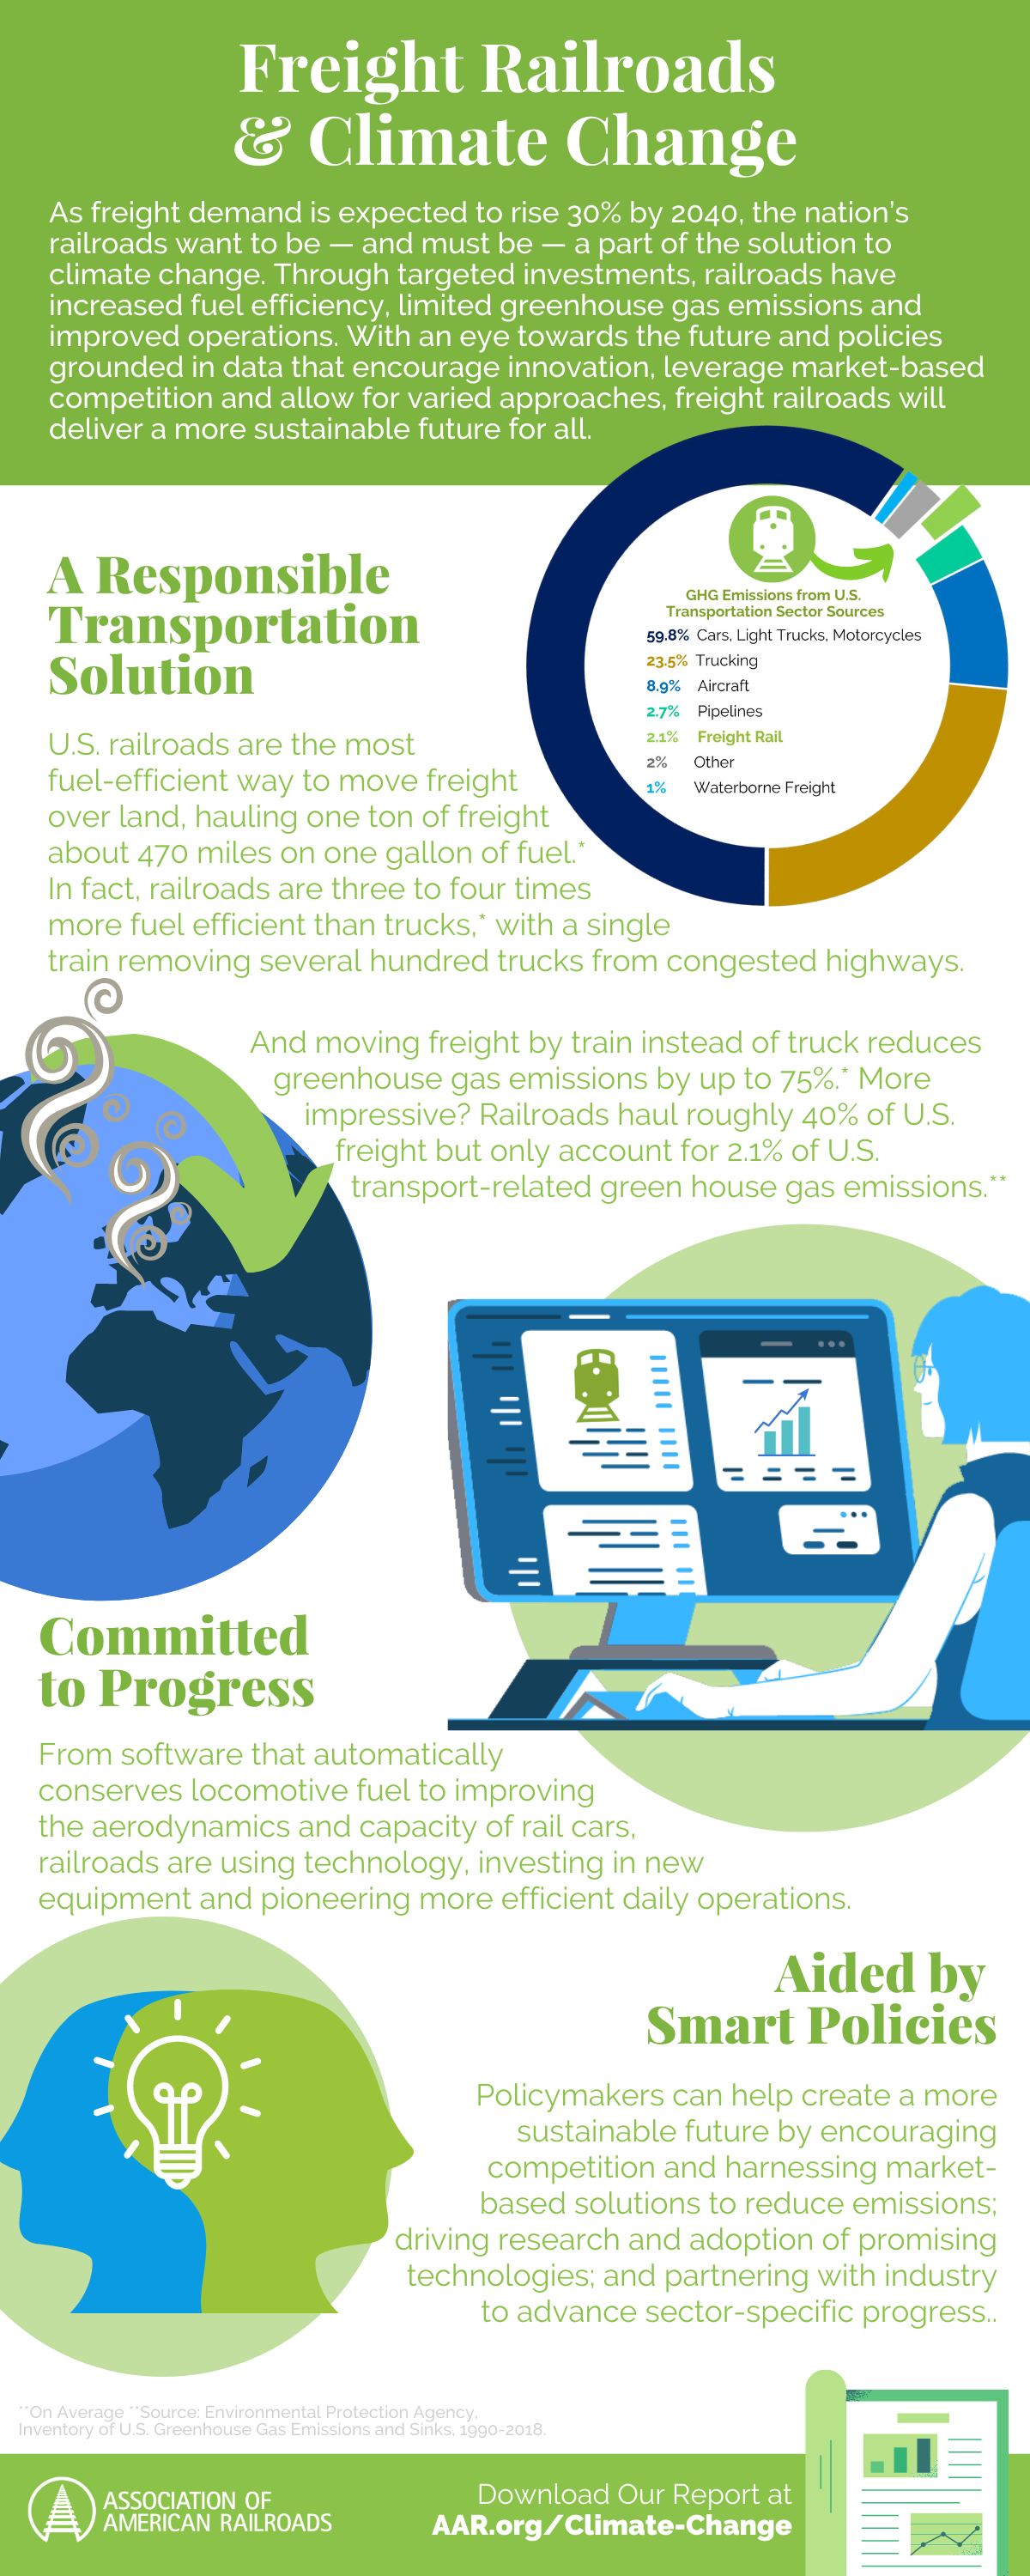 Freight Railroads and Climate change infographic